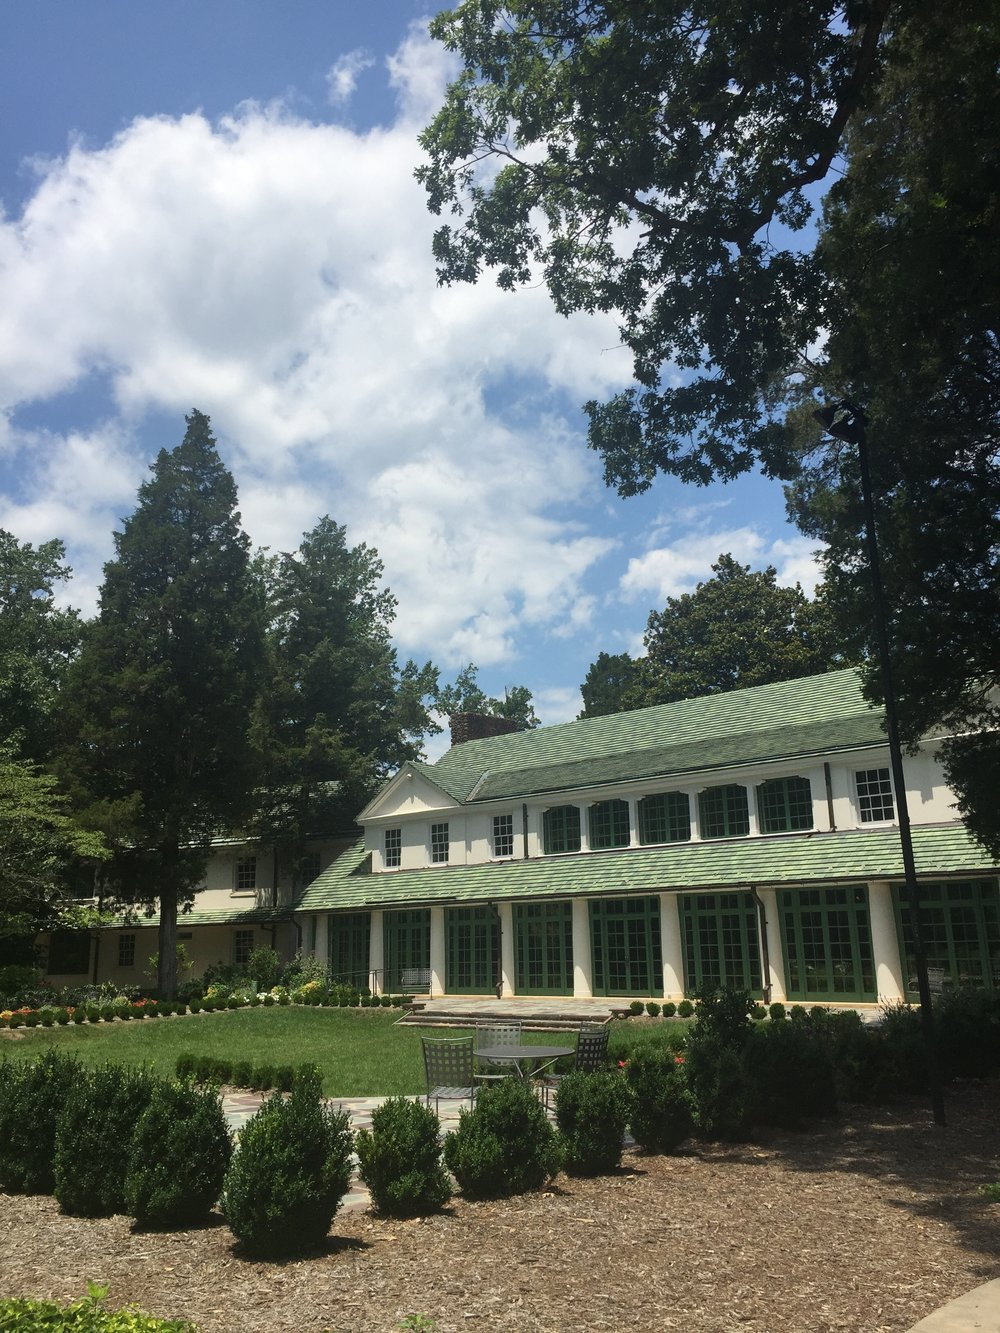 The Reynolda House Museum of American Art